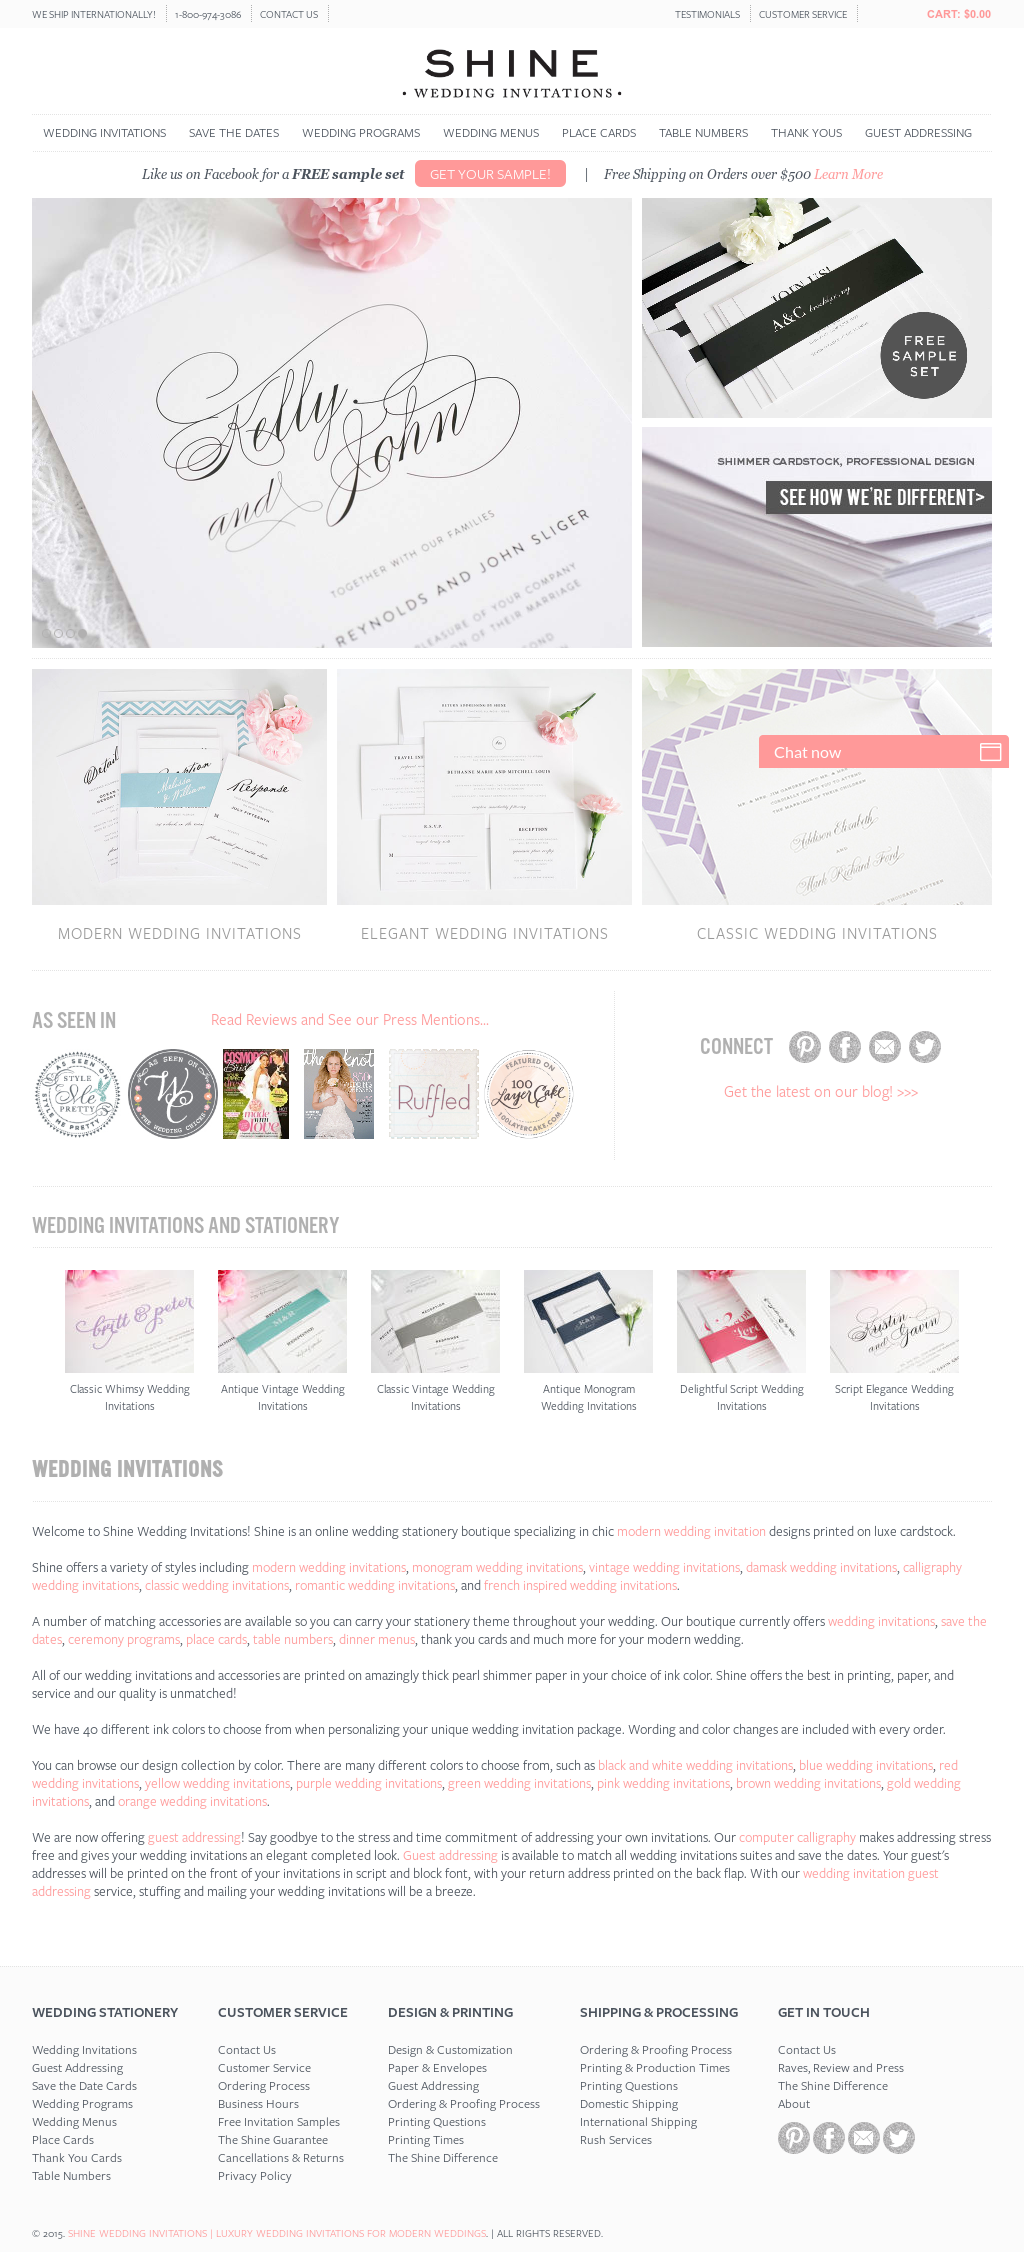 Shine Wedding Invitations Competitors Revenue And Employees Owler